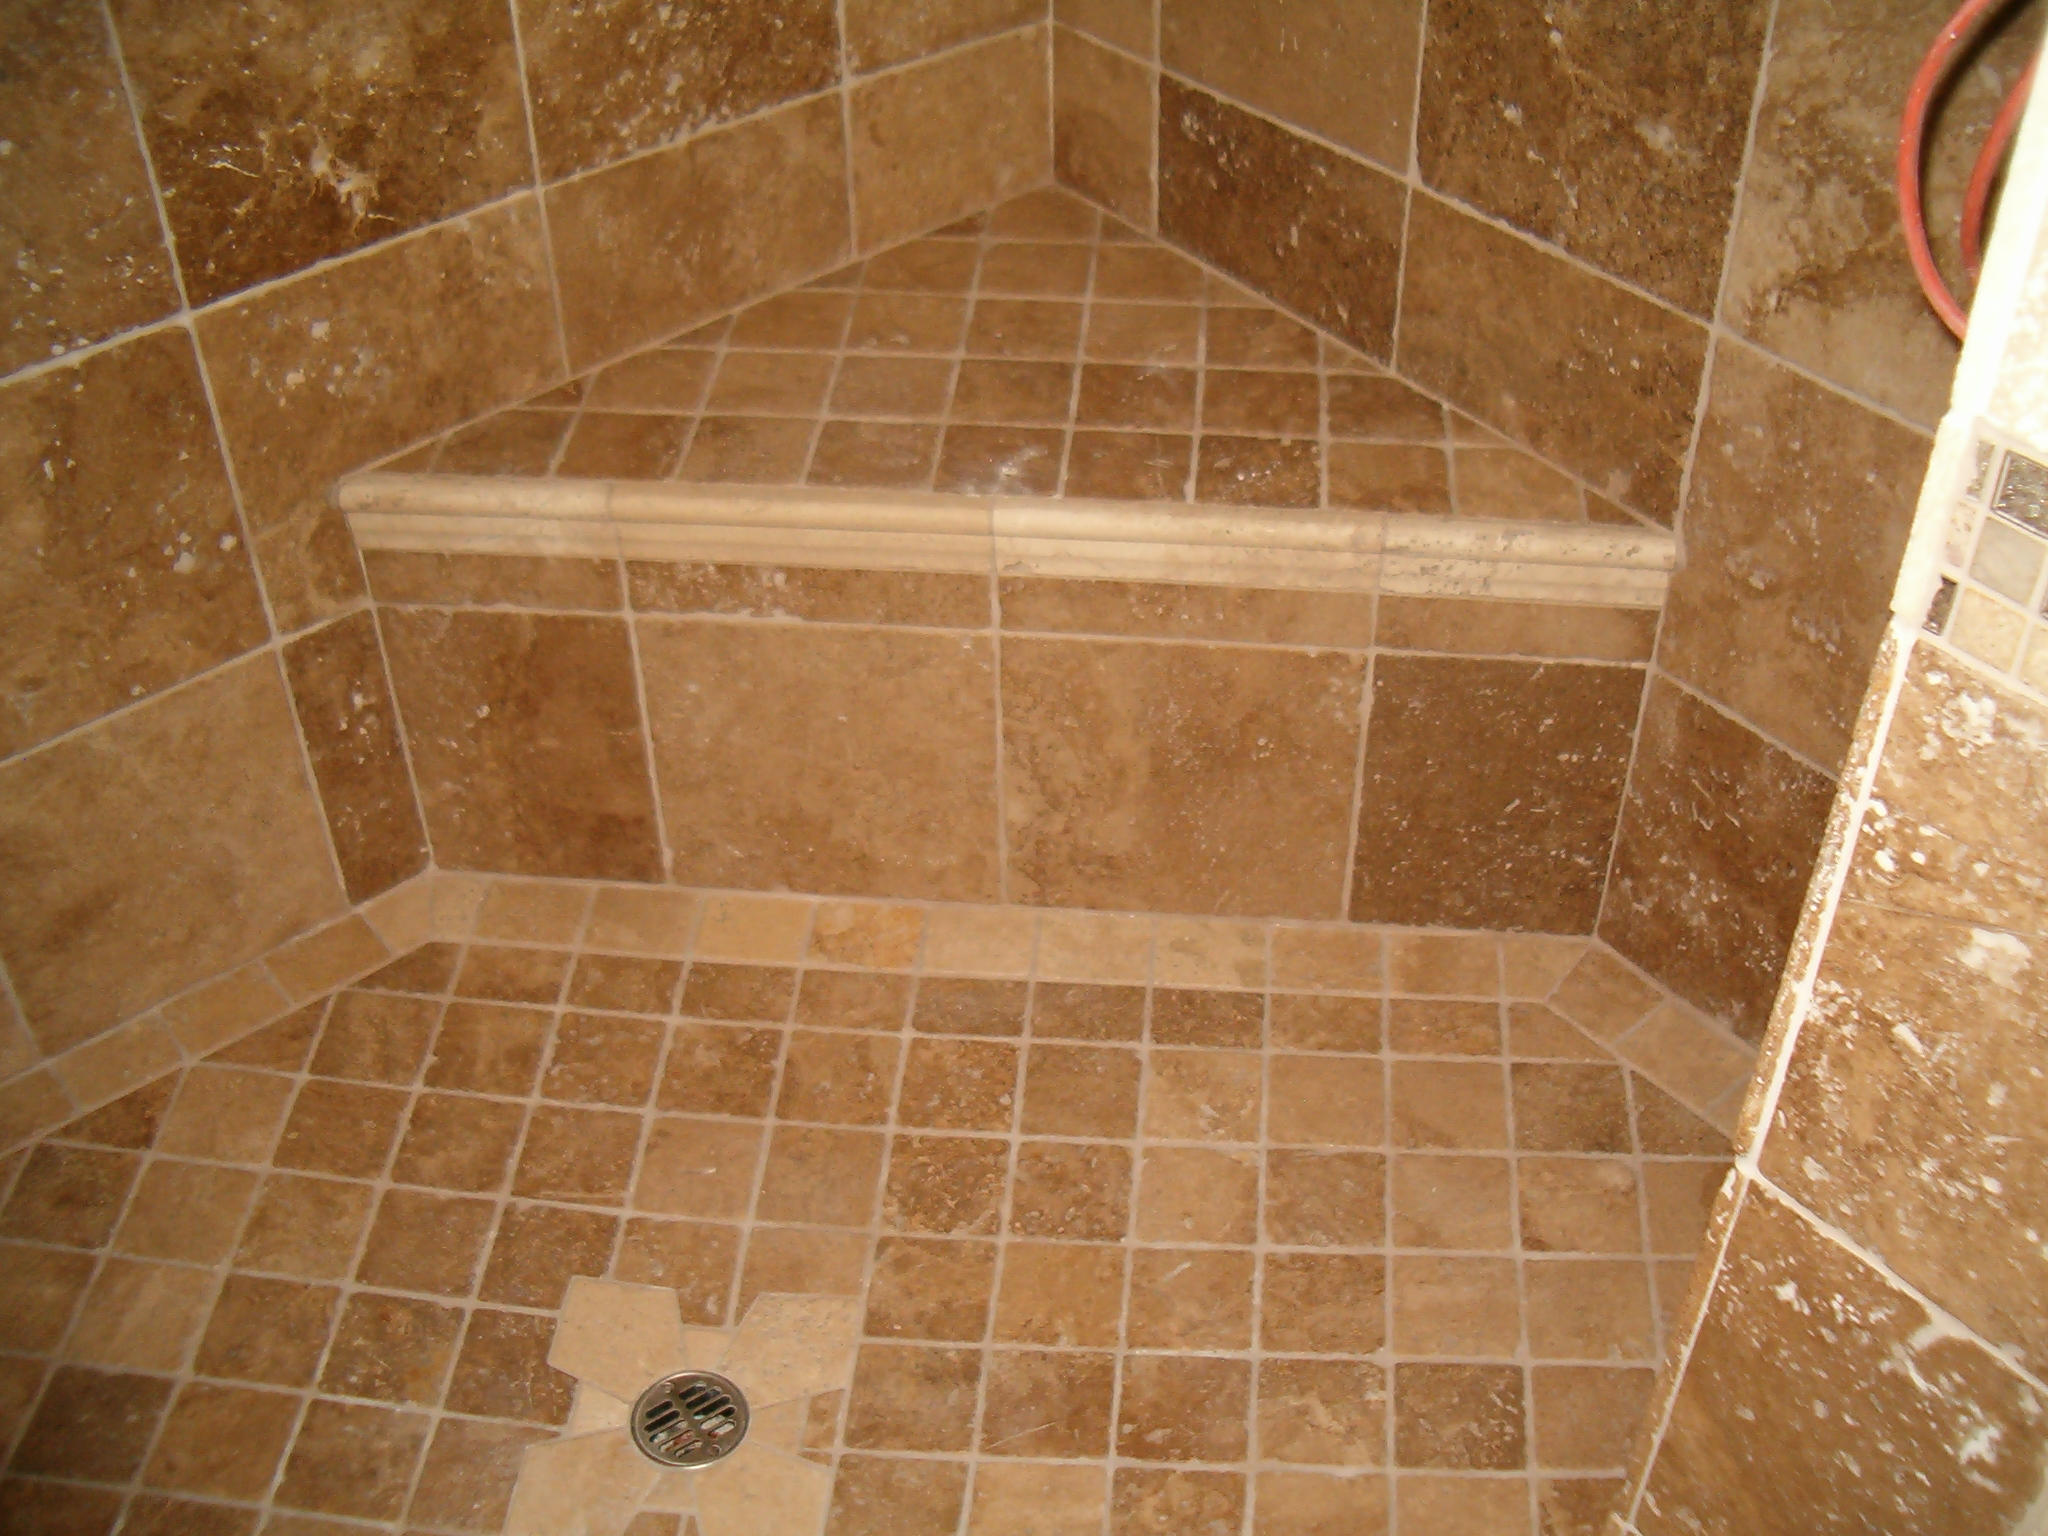 Shower anatomy for Ceramic bathroom tile designs